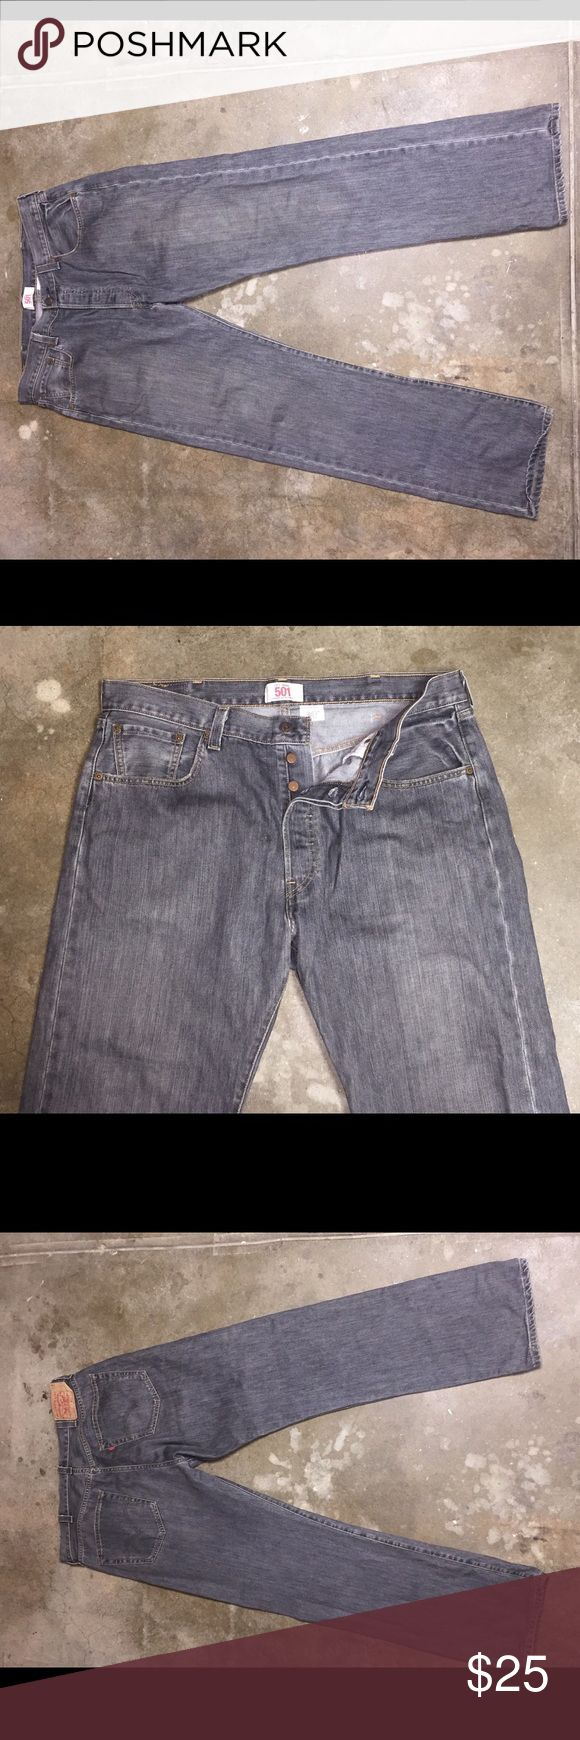 Levi's 501 38 X 34 Jeans Washed Out Straight Leg Up for sale is a pair of Levi's classic 501 jeans in size 38 x 34 in washed out grey. These are in excellent condition. Levi's Jeans Straight